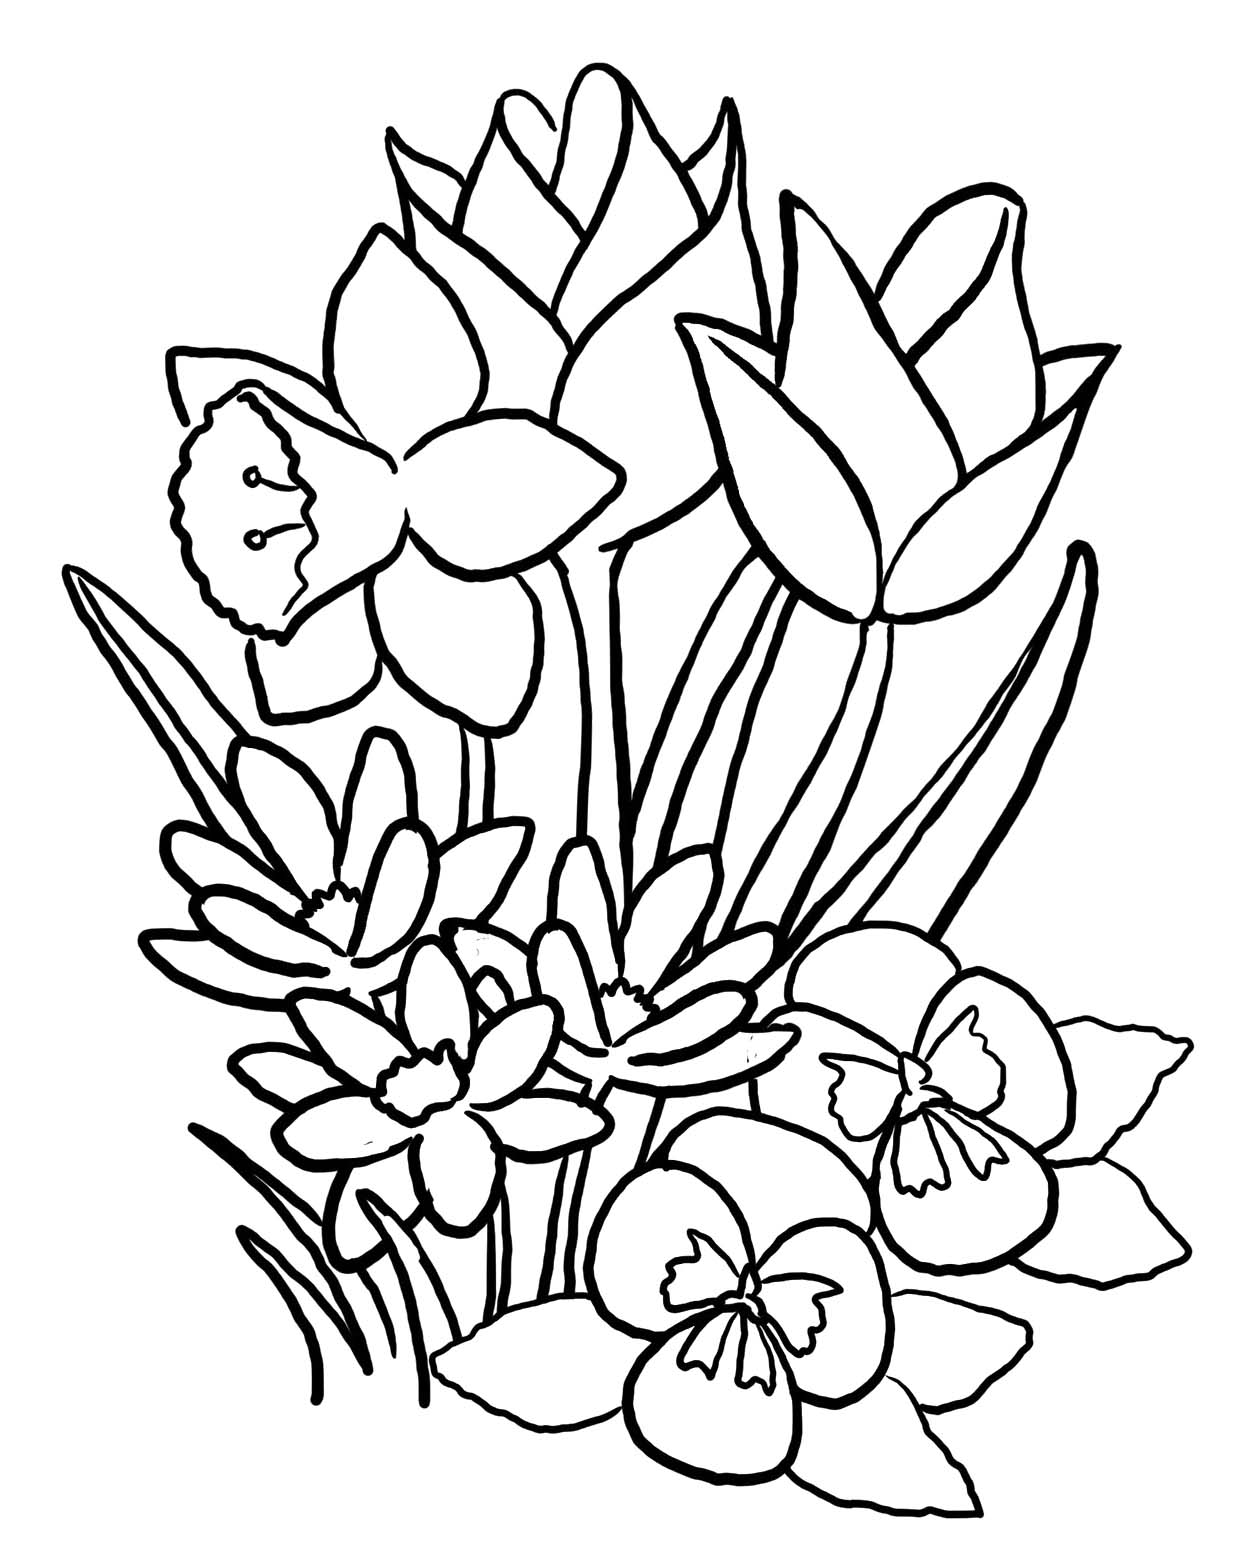 pictures of flowers to color free printables free printable flower coloring pages for kids best printables to of flowers pictures color free